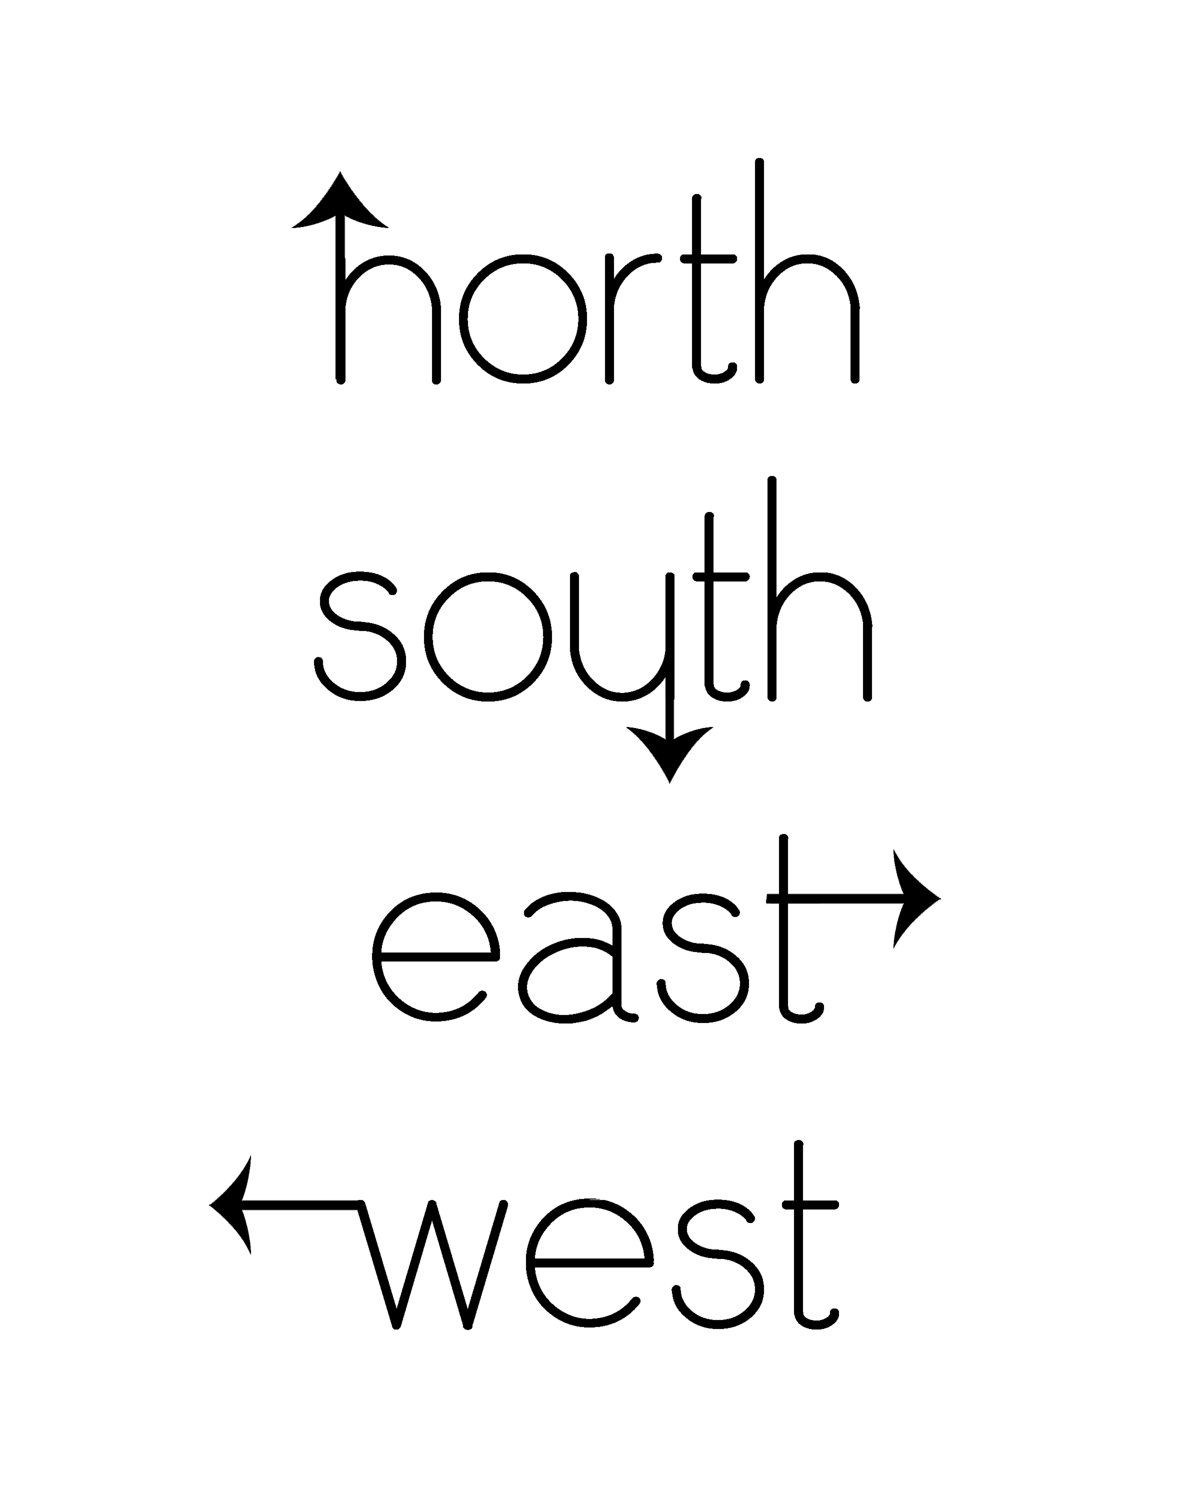 north south east west arrows directions map compass print